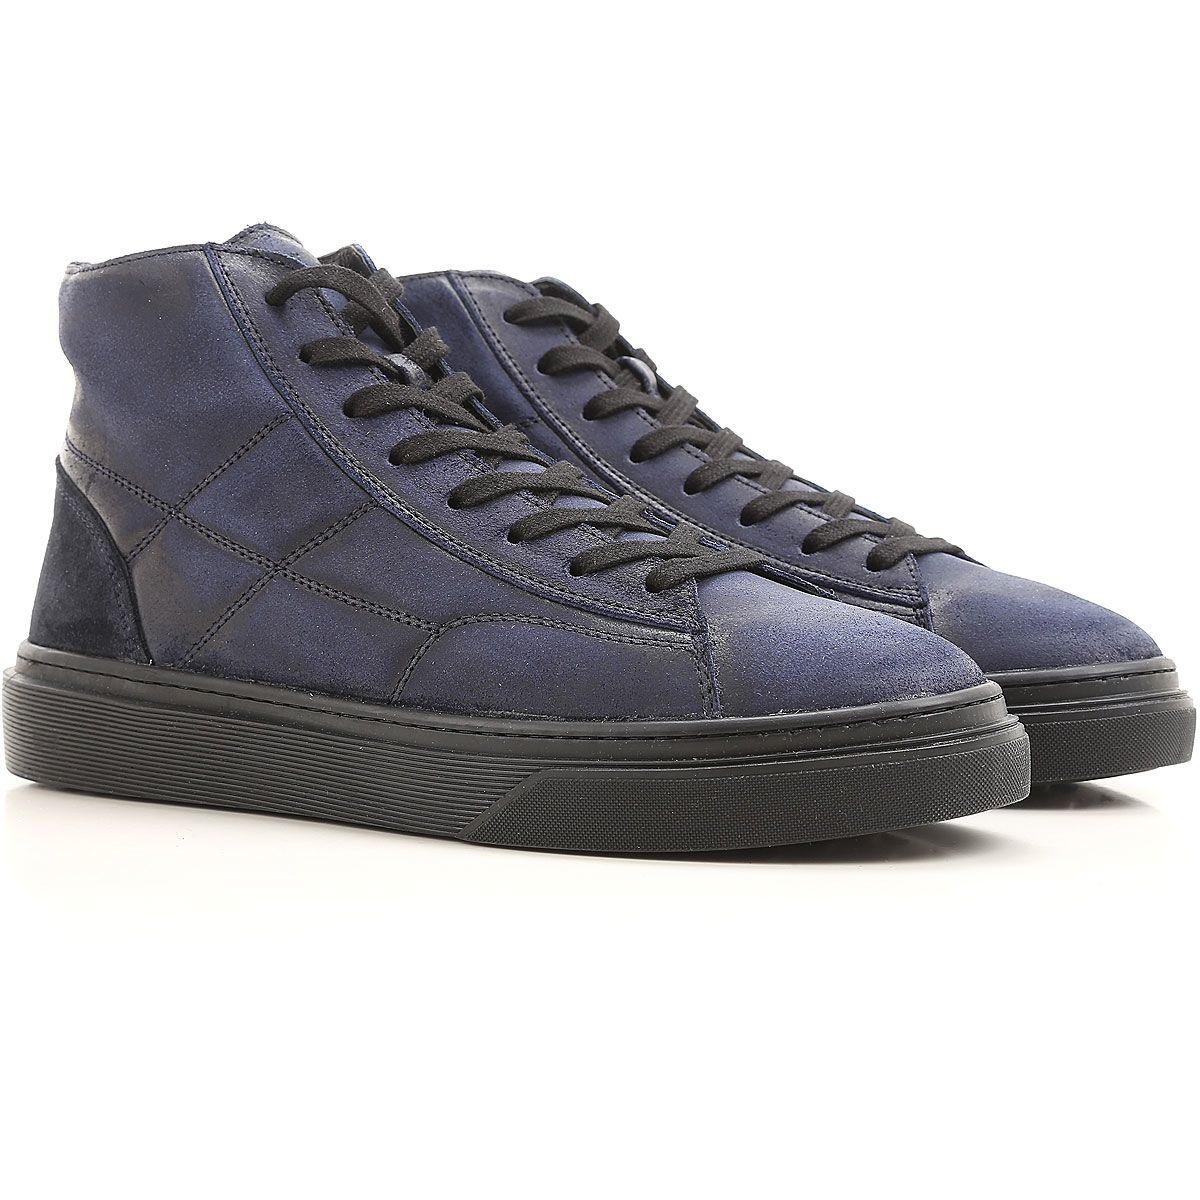 Mens H340 Hogan Sneakers